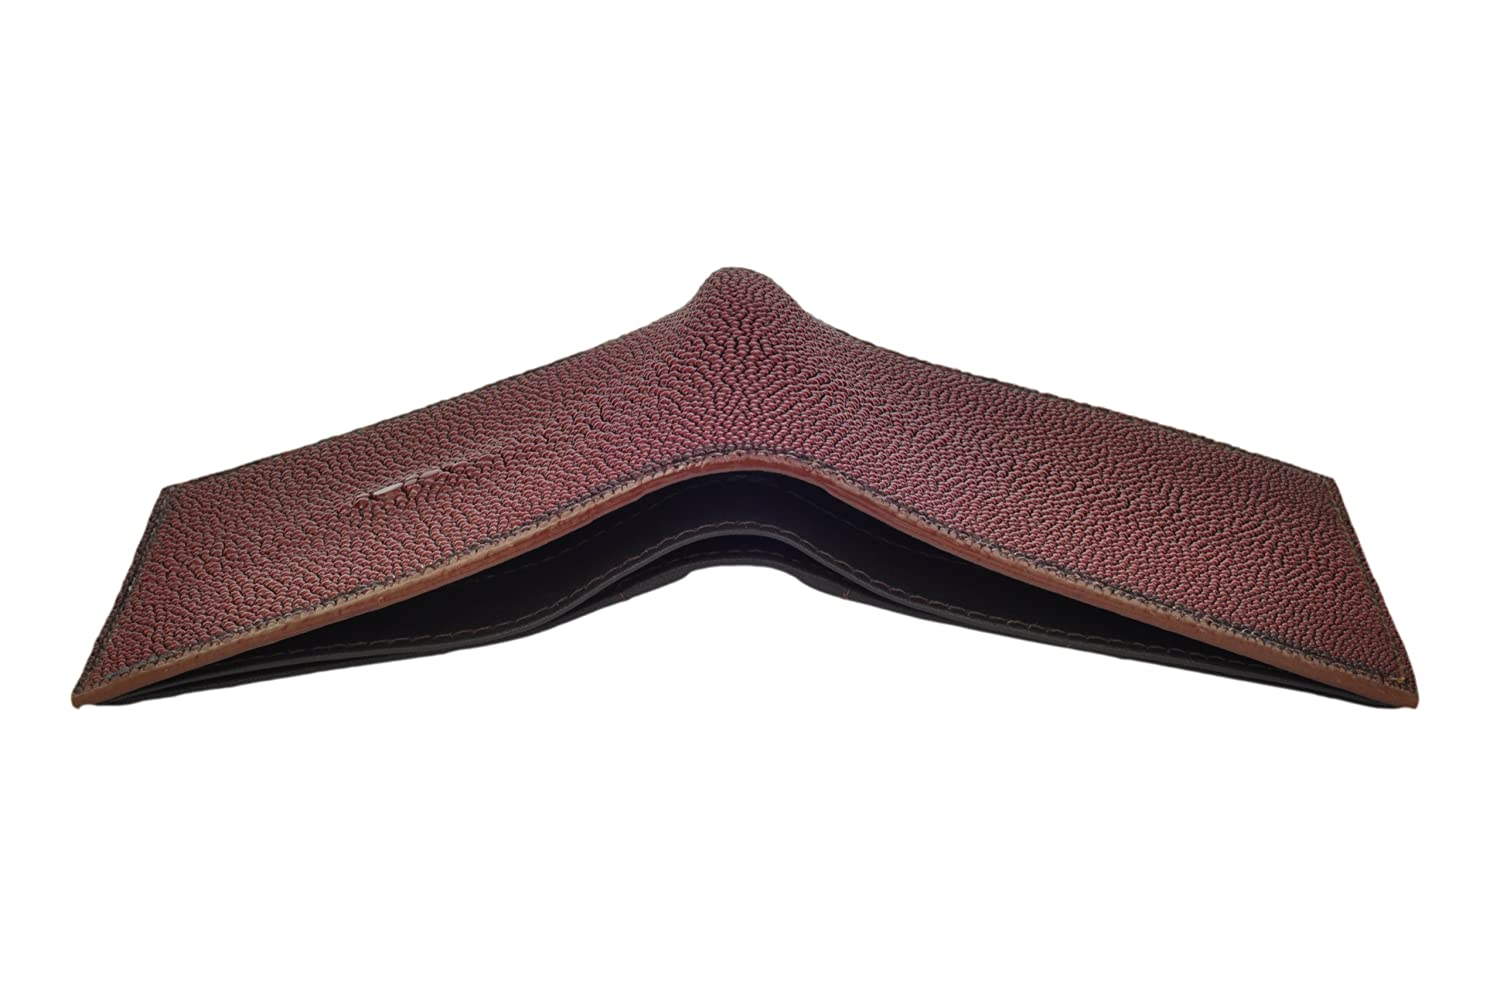 Stingray Leather Wallet 6 Credit Card Slots BiFold Brown